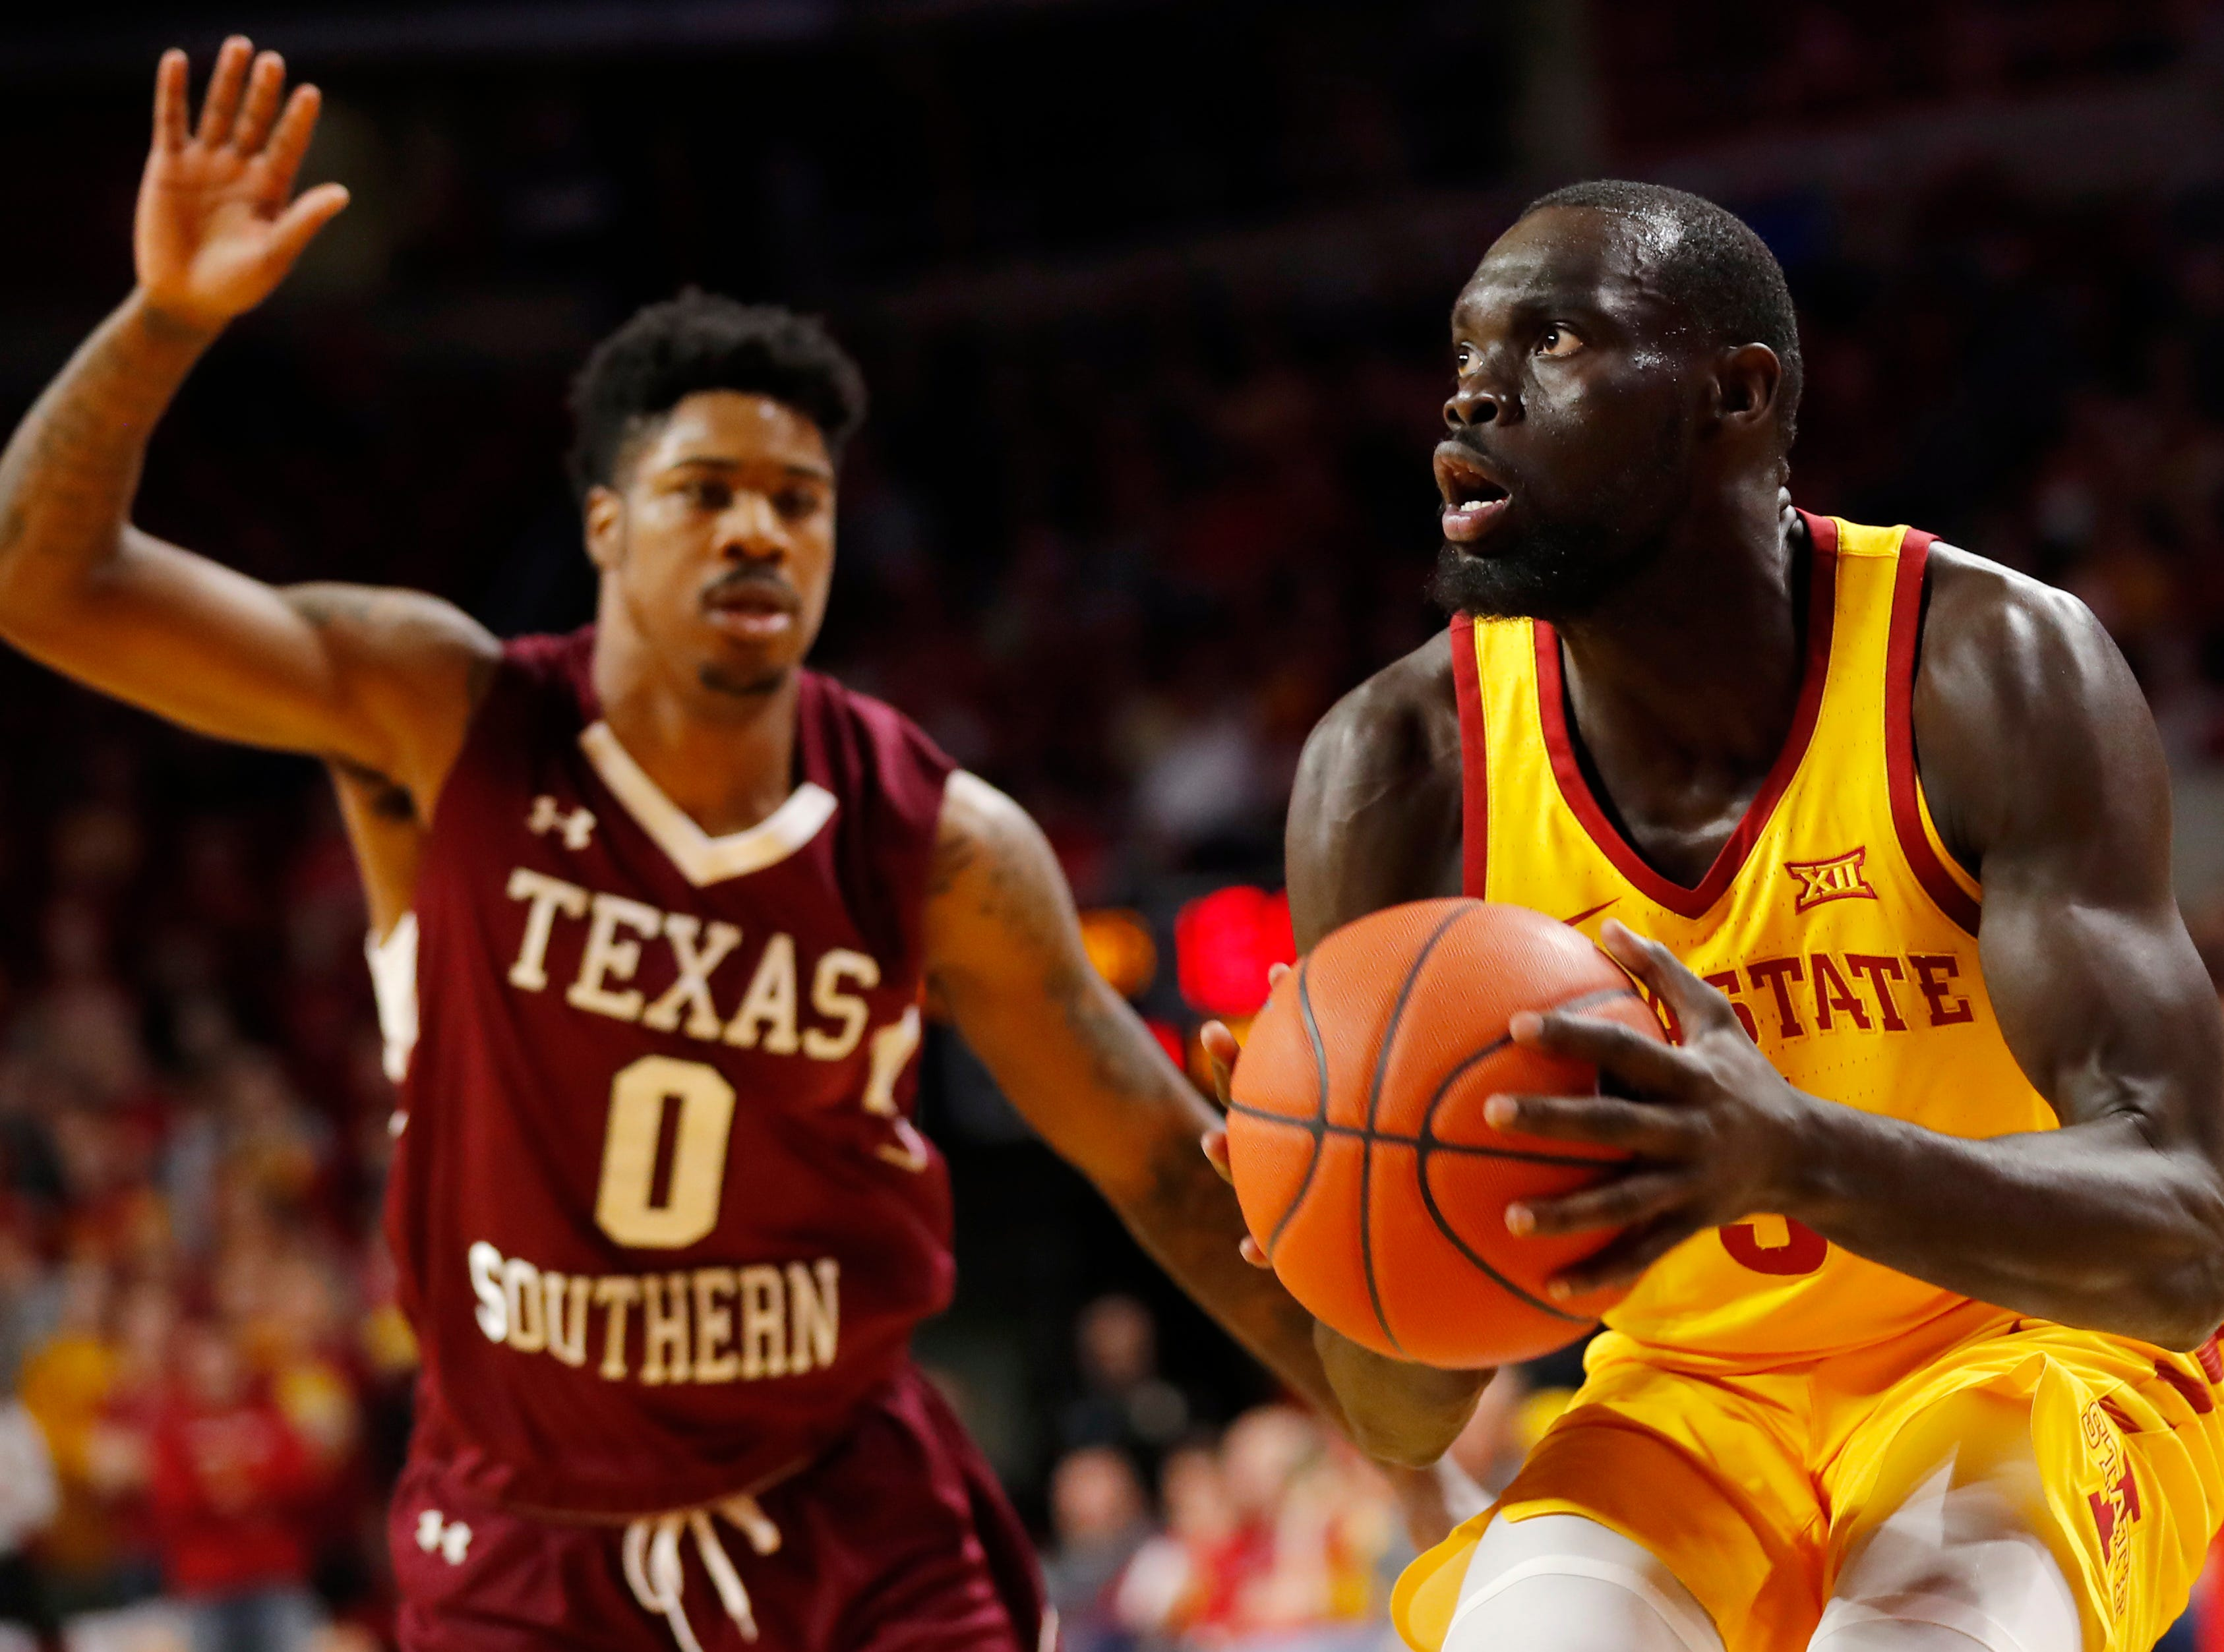 Iowa State guard Marial Shayok drives to the basket past Texas Southern forward Devocio Butler (0) during the first half of an NCAA college basketball game, Monday, Nov. 12, 2018, in Ames, Iowa.